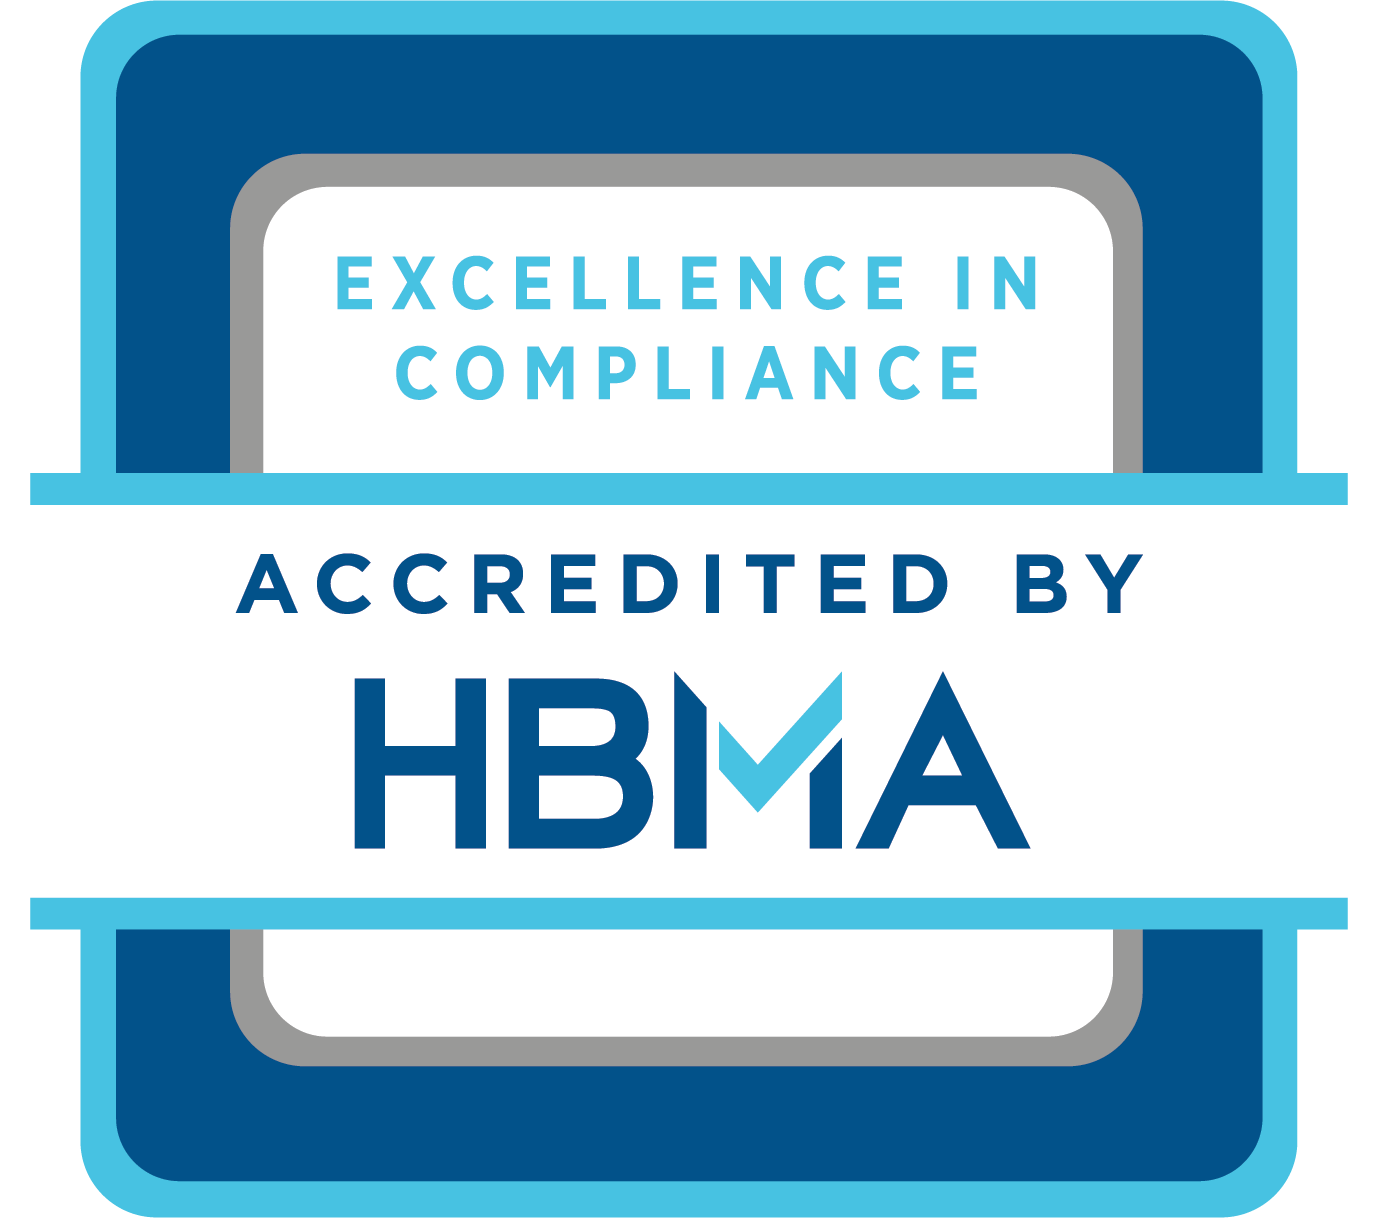 Emax Medical Billing LLC is accredited by HBMA